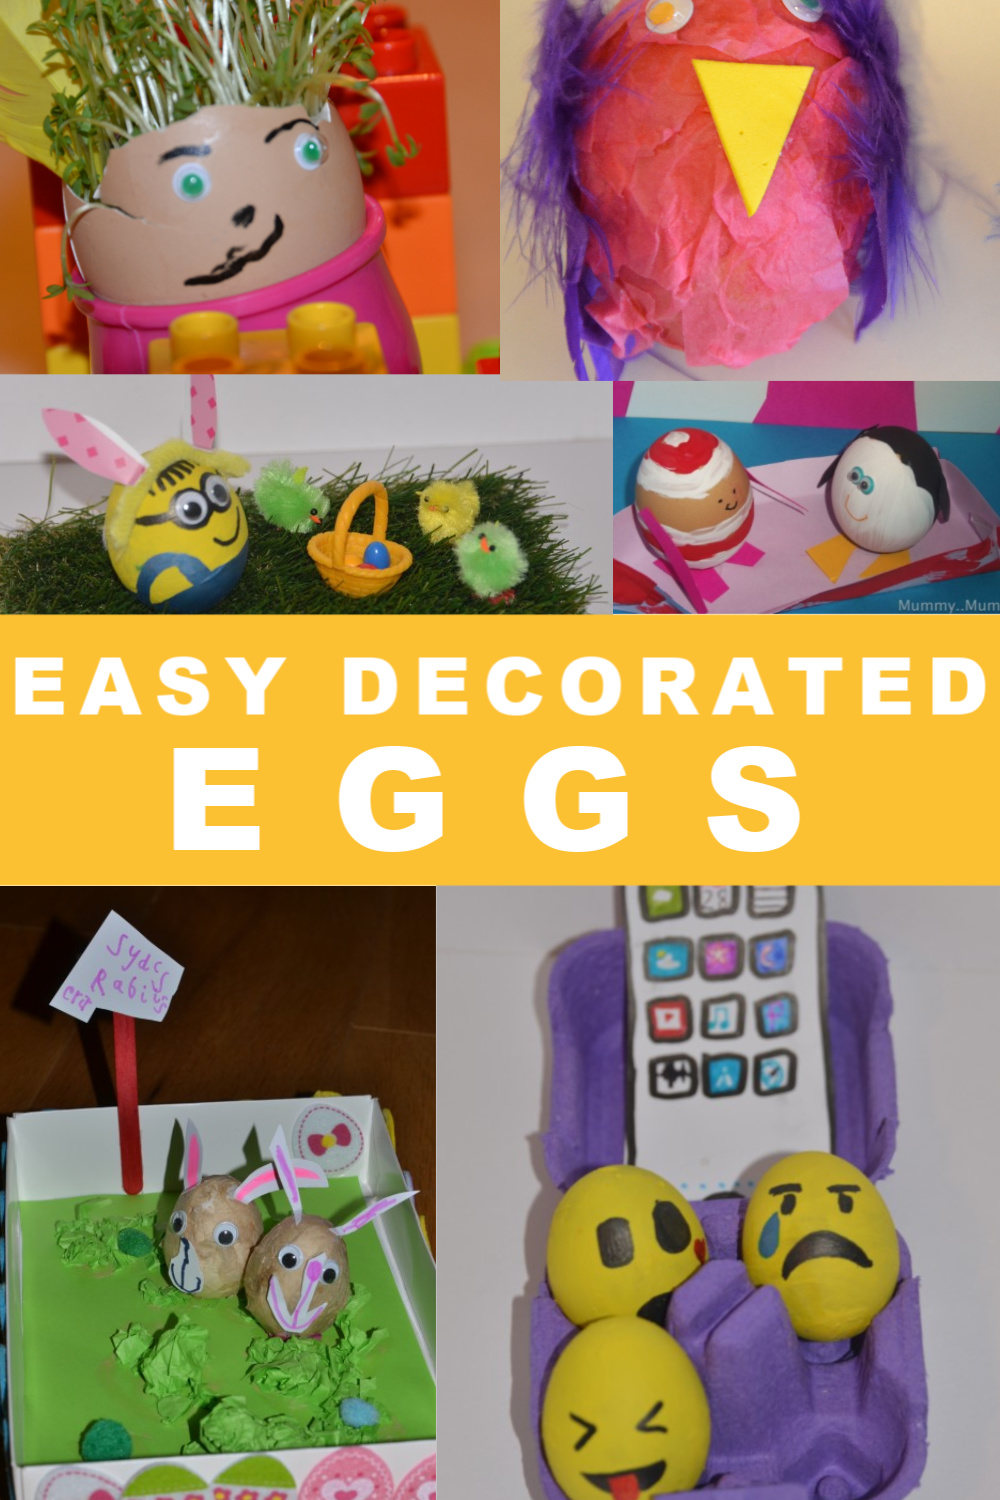 Easy decorated eggs for Easter